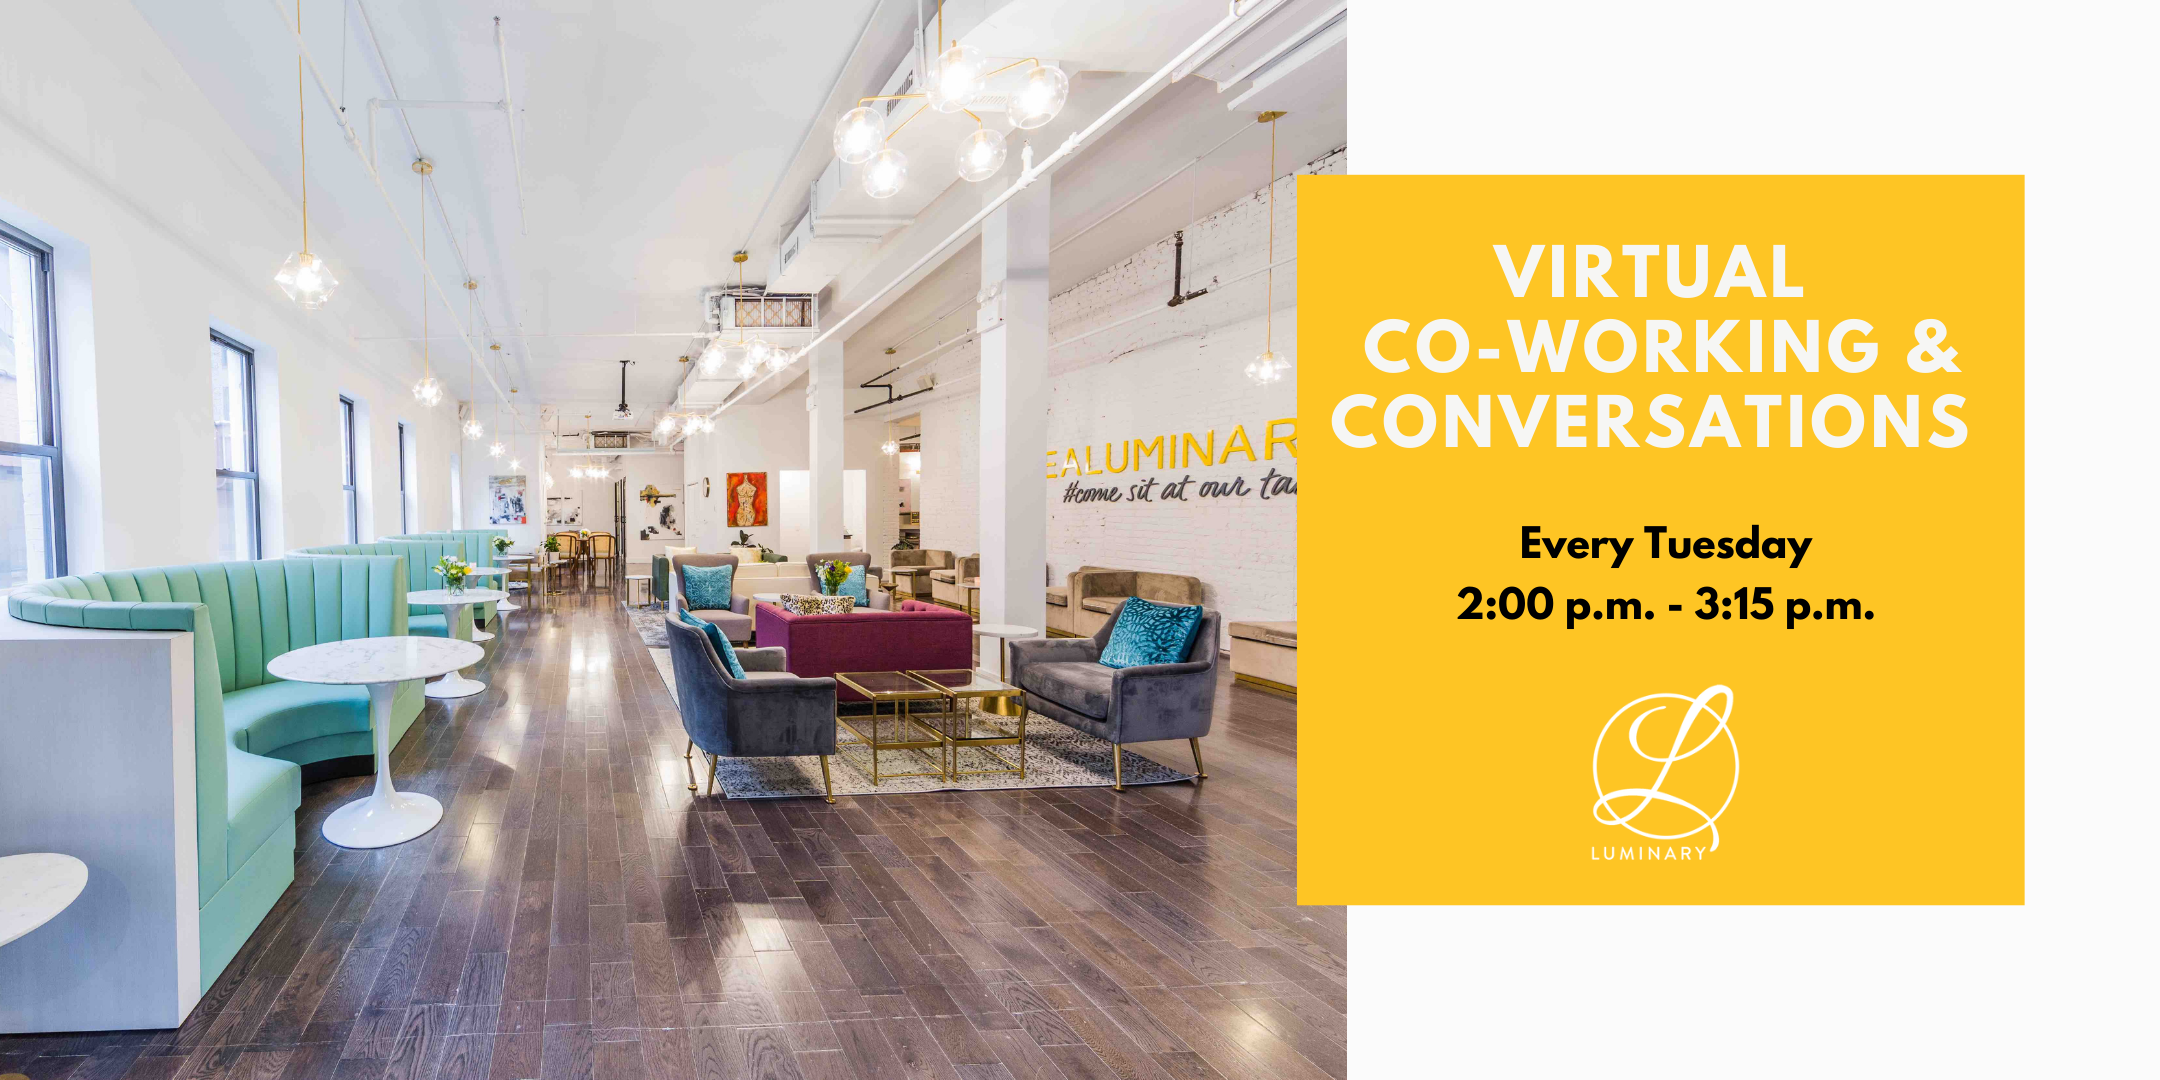 Virtual Co-Working & Conversations